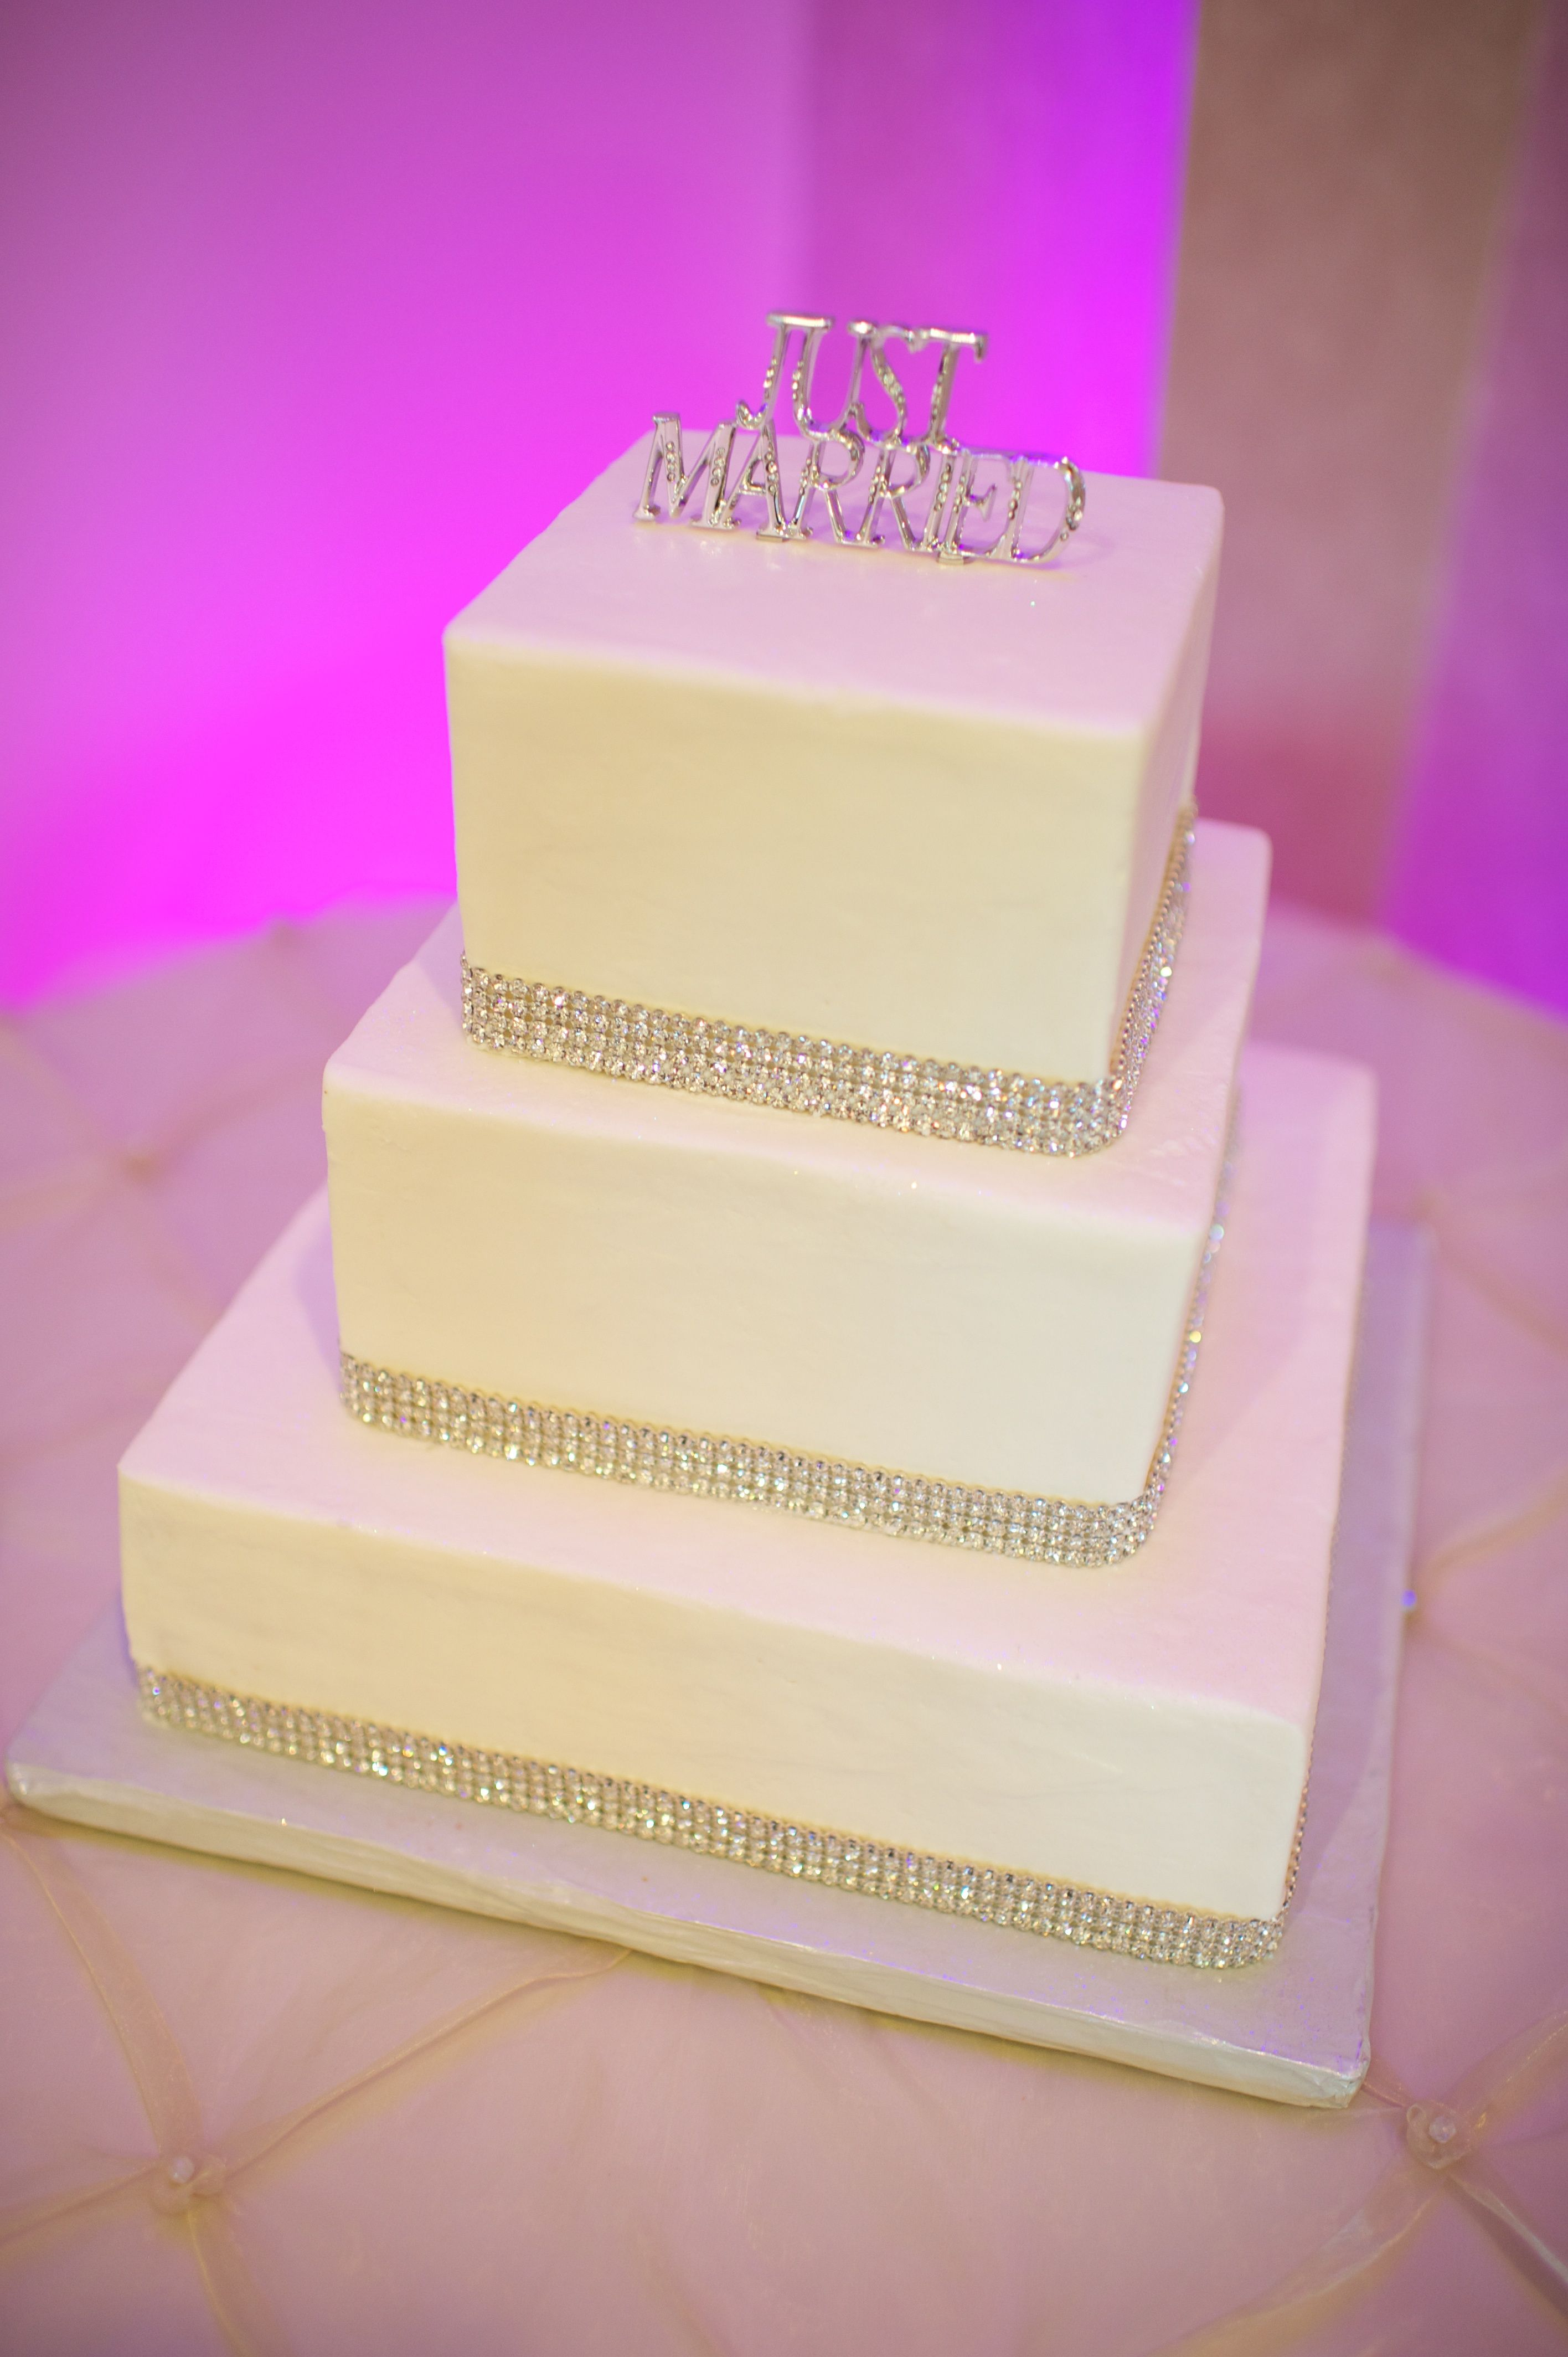 Jewel cake accents cake by incredible edibles of va